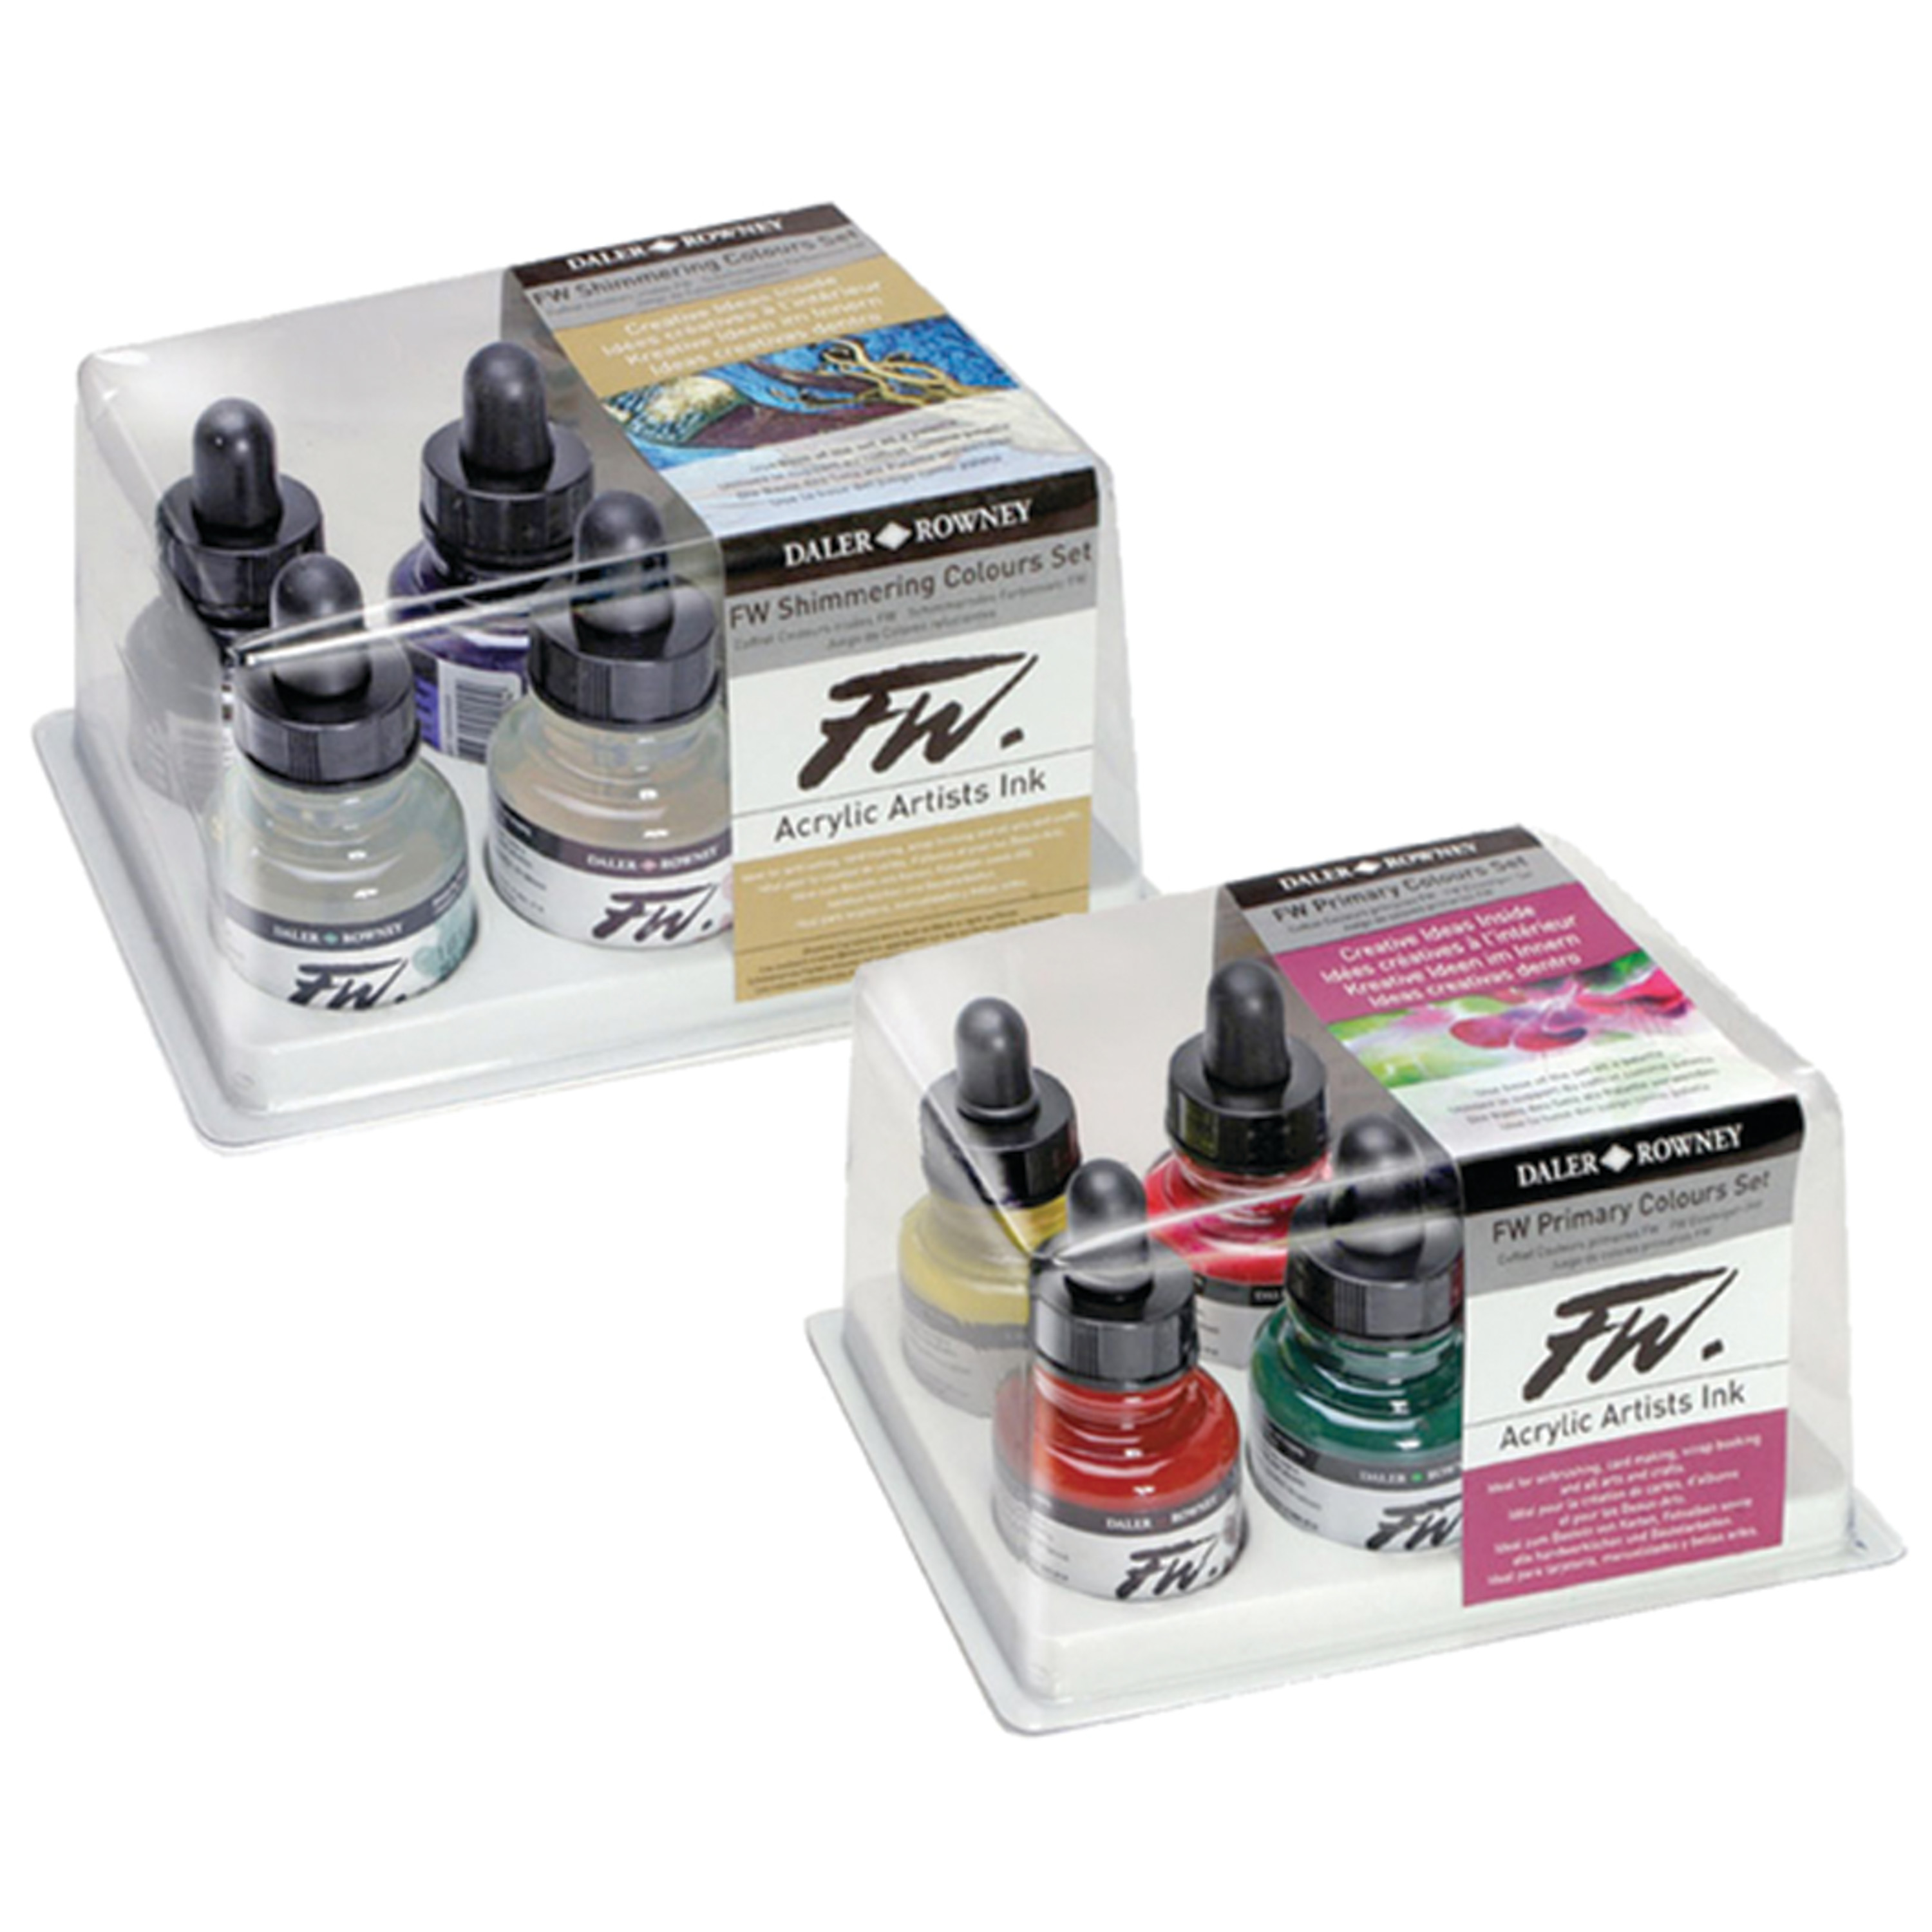 Daler-Rowney FW Acrylic Artists Ink Set, Primary Colors Set